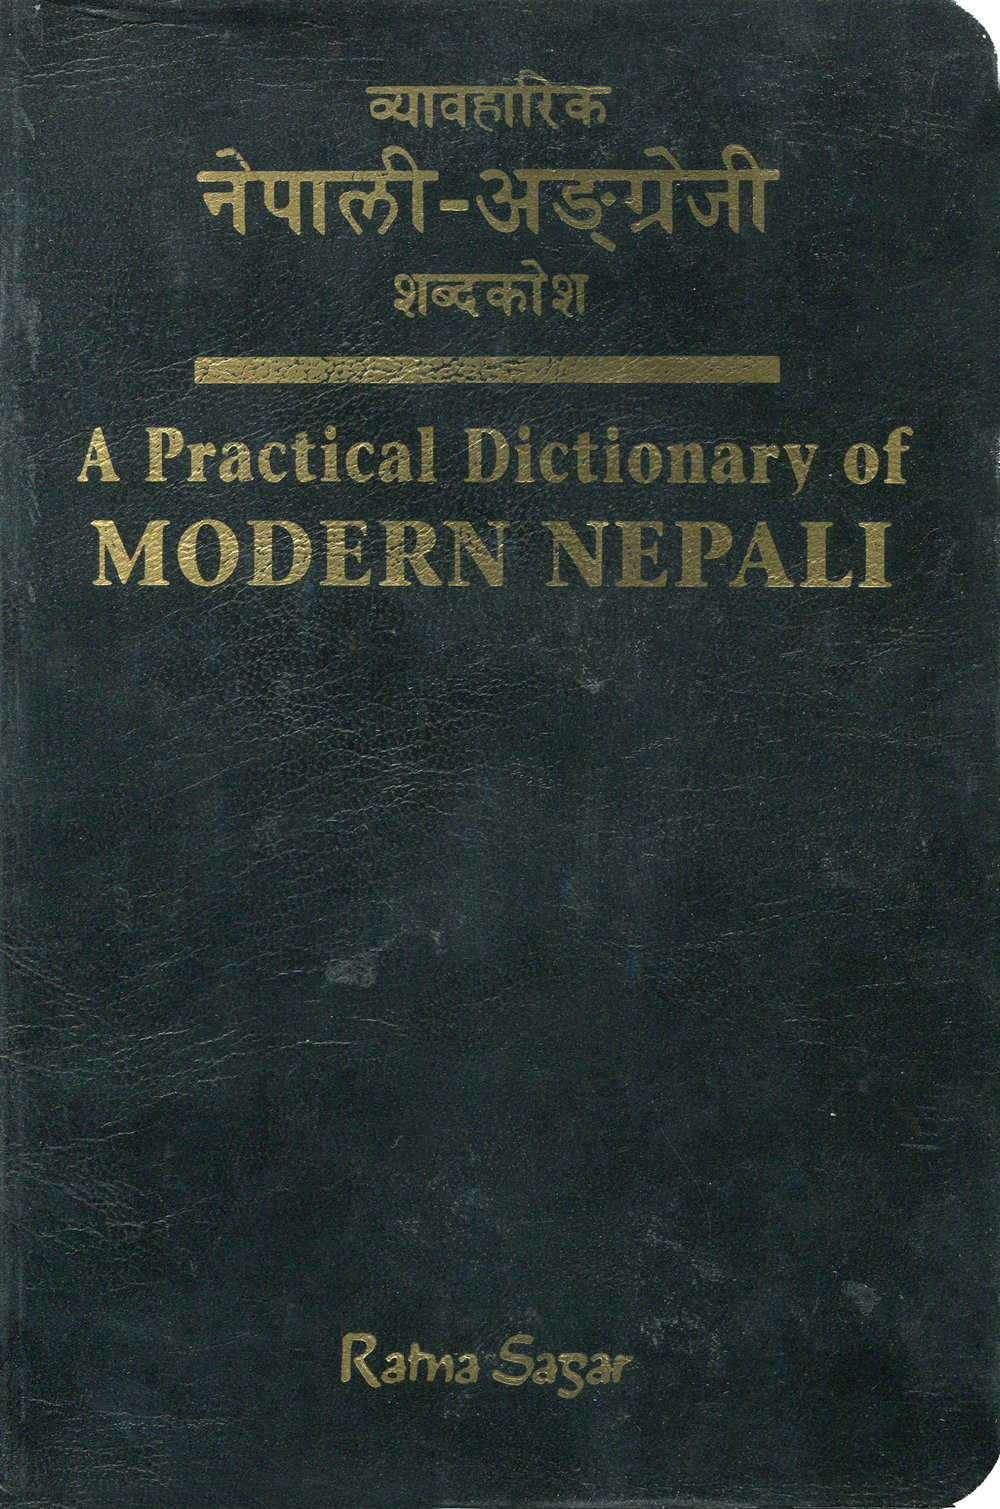 A Dictionary of Modern Nepali